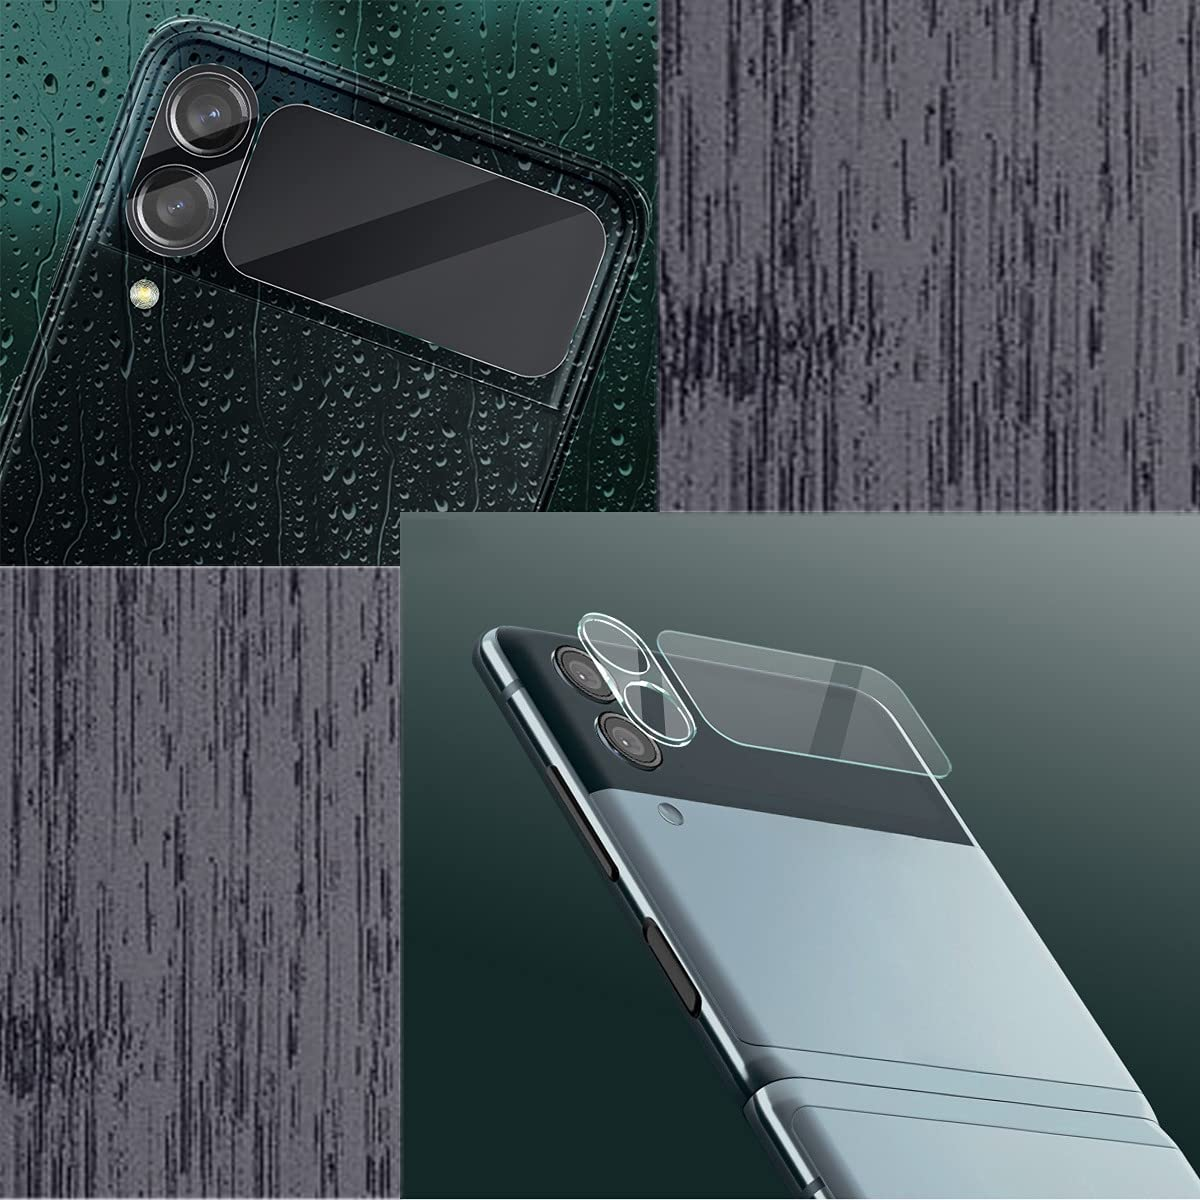 Koconh Apply to Samsung Galaxy Z Flip 3 5G Cellphone Case - Lens Protective Film - Durable, Shock-Proof, Scratch-Resistant and Drop-Proof